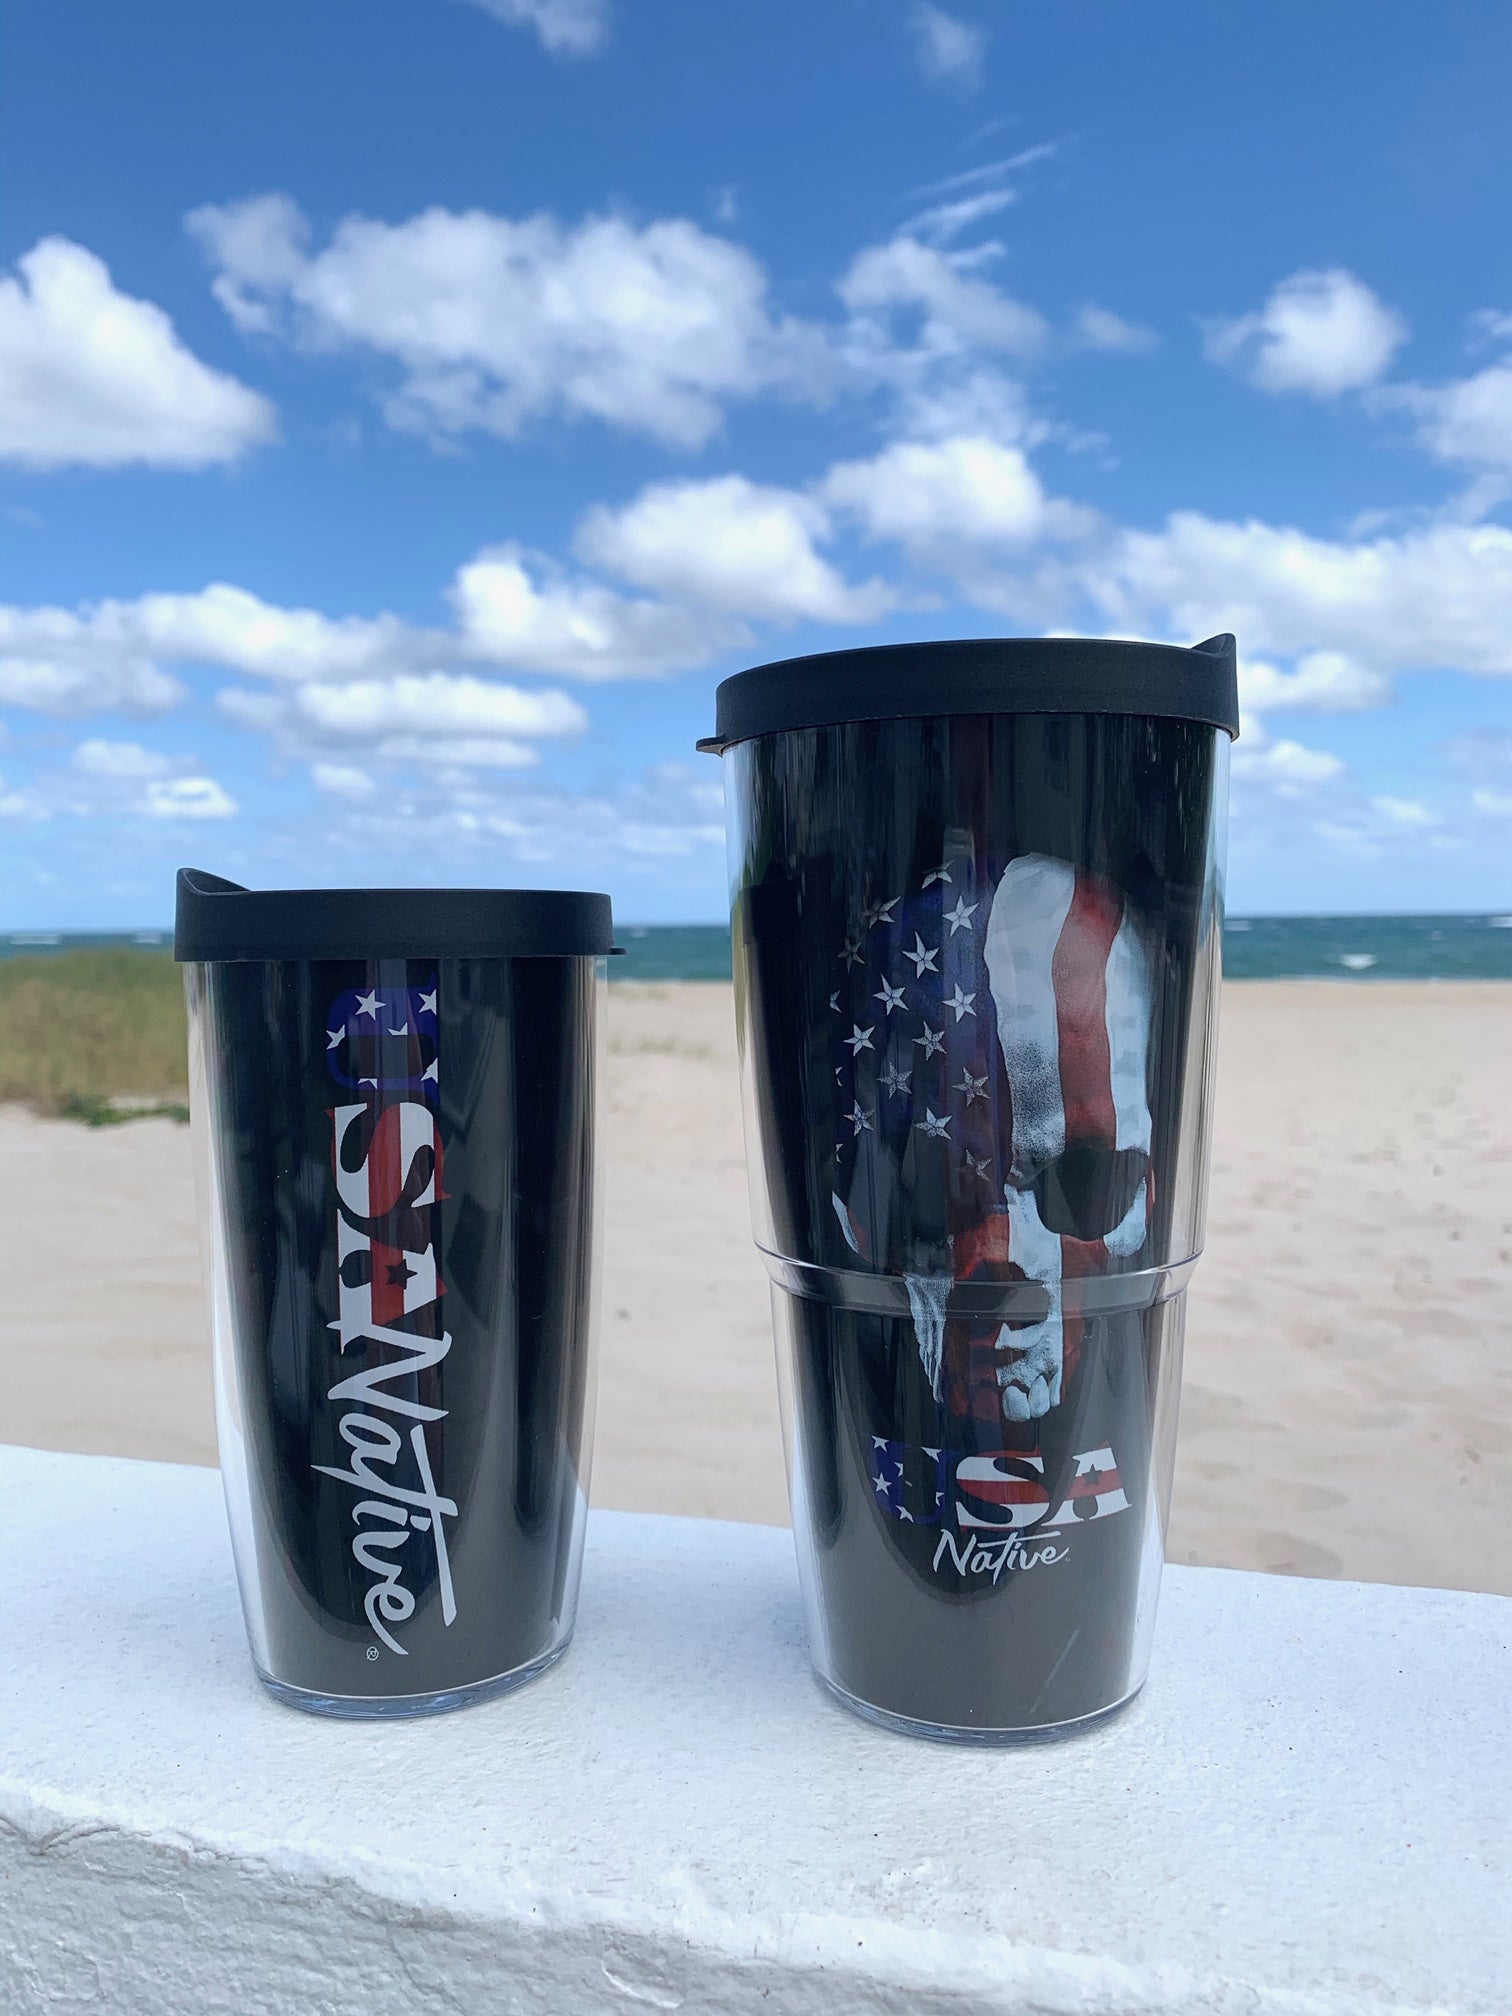 USA Native - Tumblers